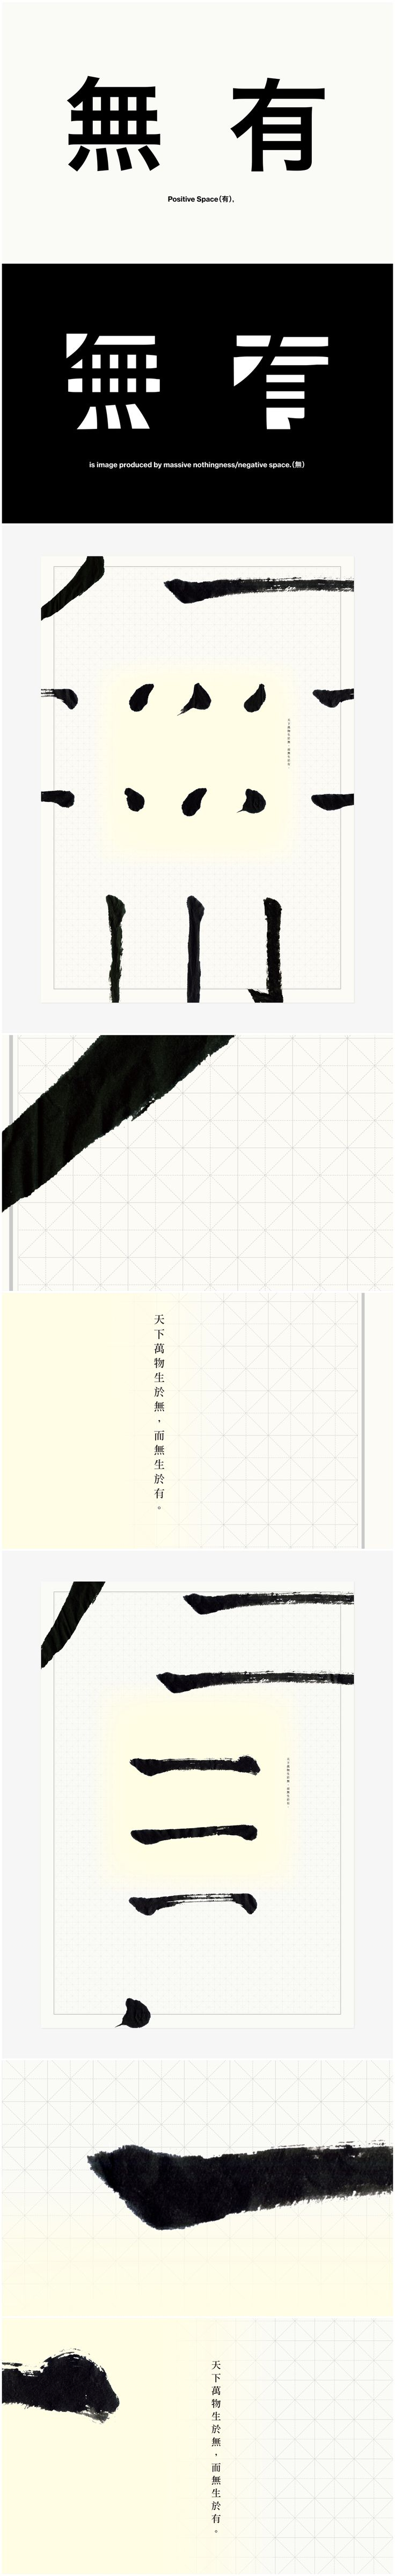 「書法與設計」海報展 Ink and Desogn Poster Exhibition via http://www.juliushui.com/html/works/ink-design/index.html